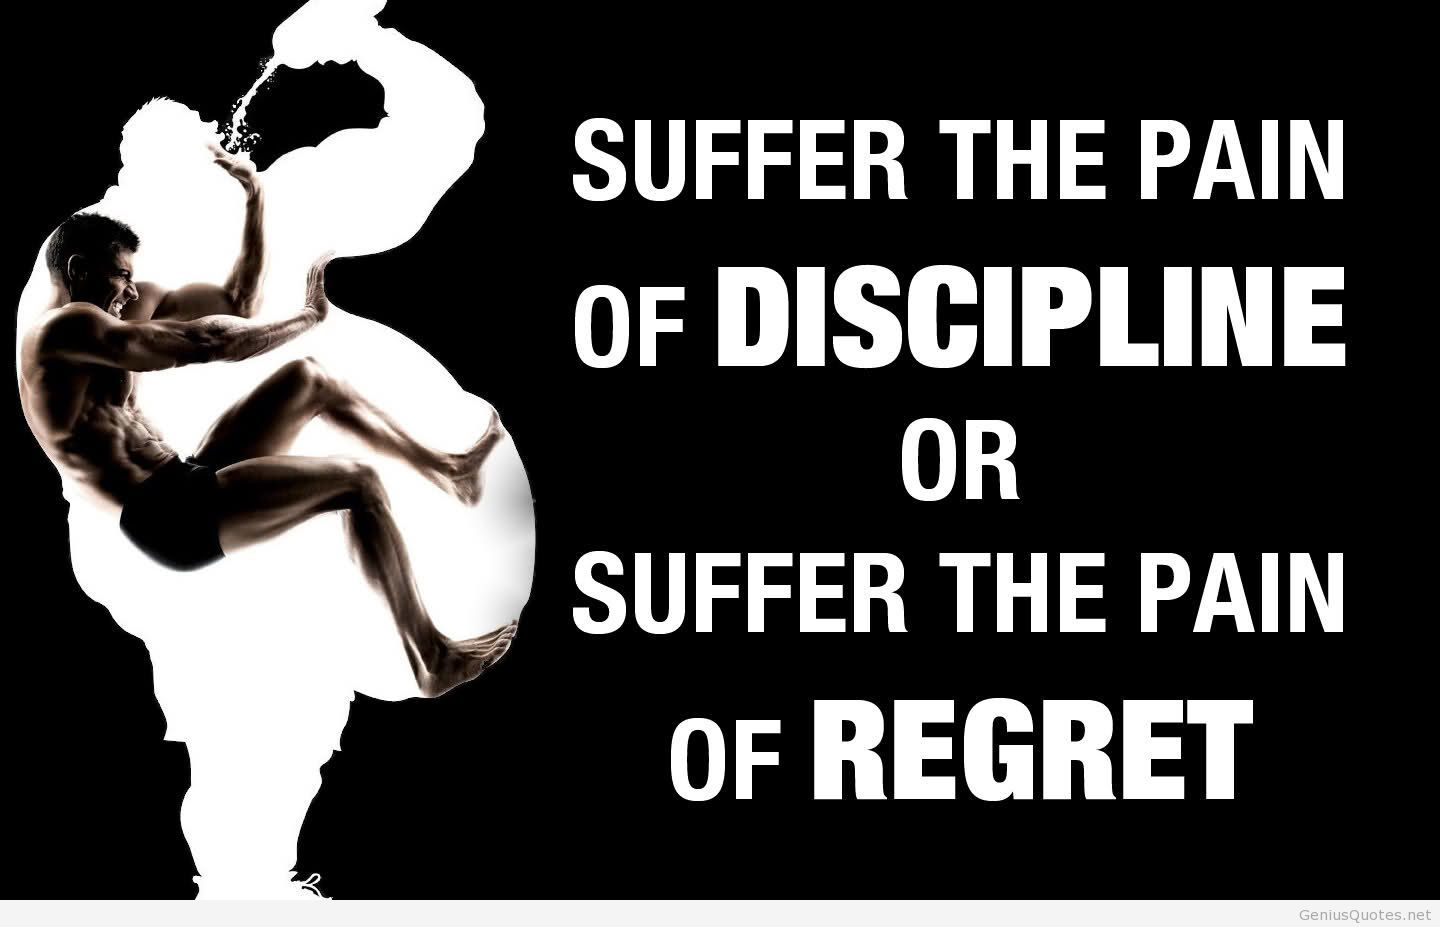 Top 25 Motivational Bodybuilding Tumblr Quotes Quote - Bodybuilding Hd Quotes - HD Wallpaper